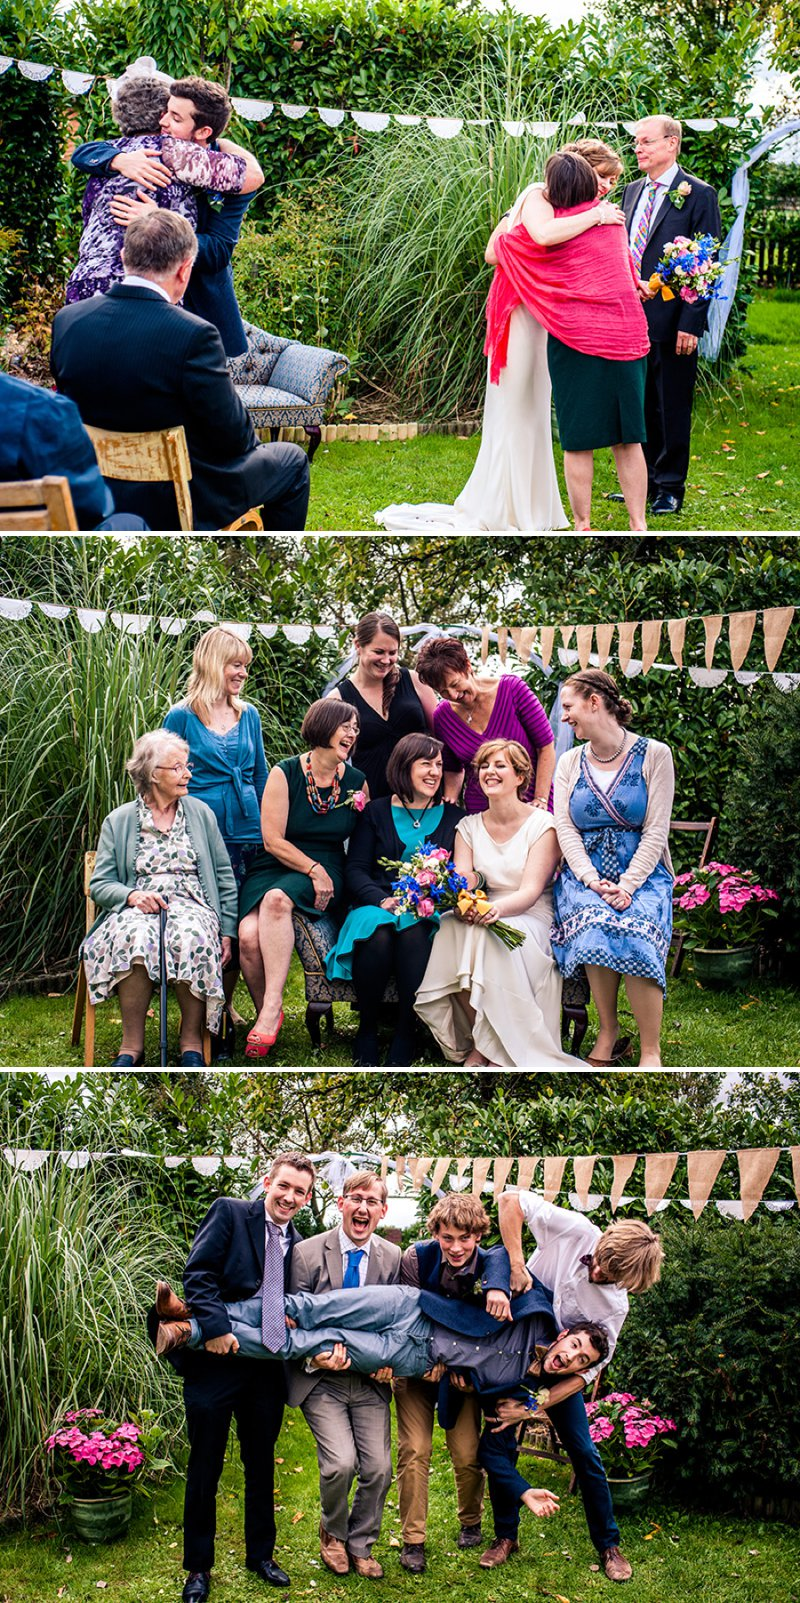 Rustic Backyard Wedding With Bride In Elegant Rapsimo Dress And Groom In Wool Suit And Bowtie With Lots Of Home Made Details And A High Tea Wedding Breakfast 6